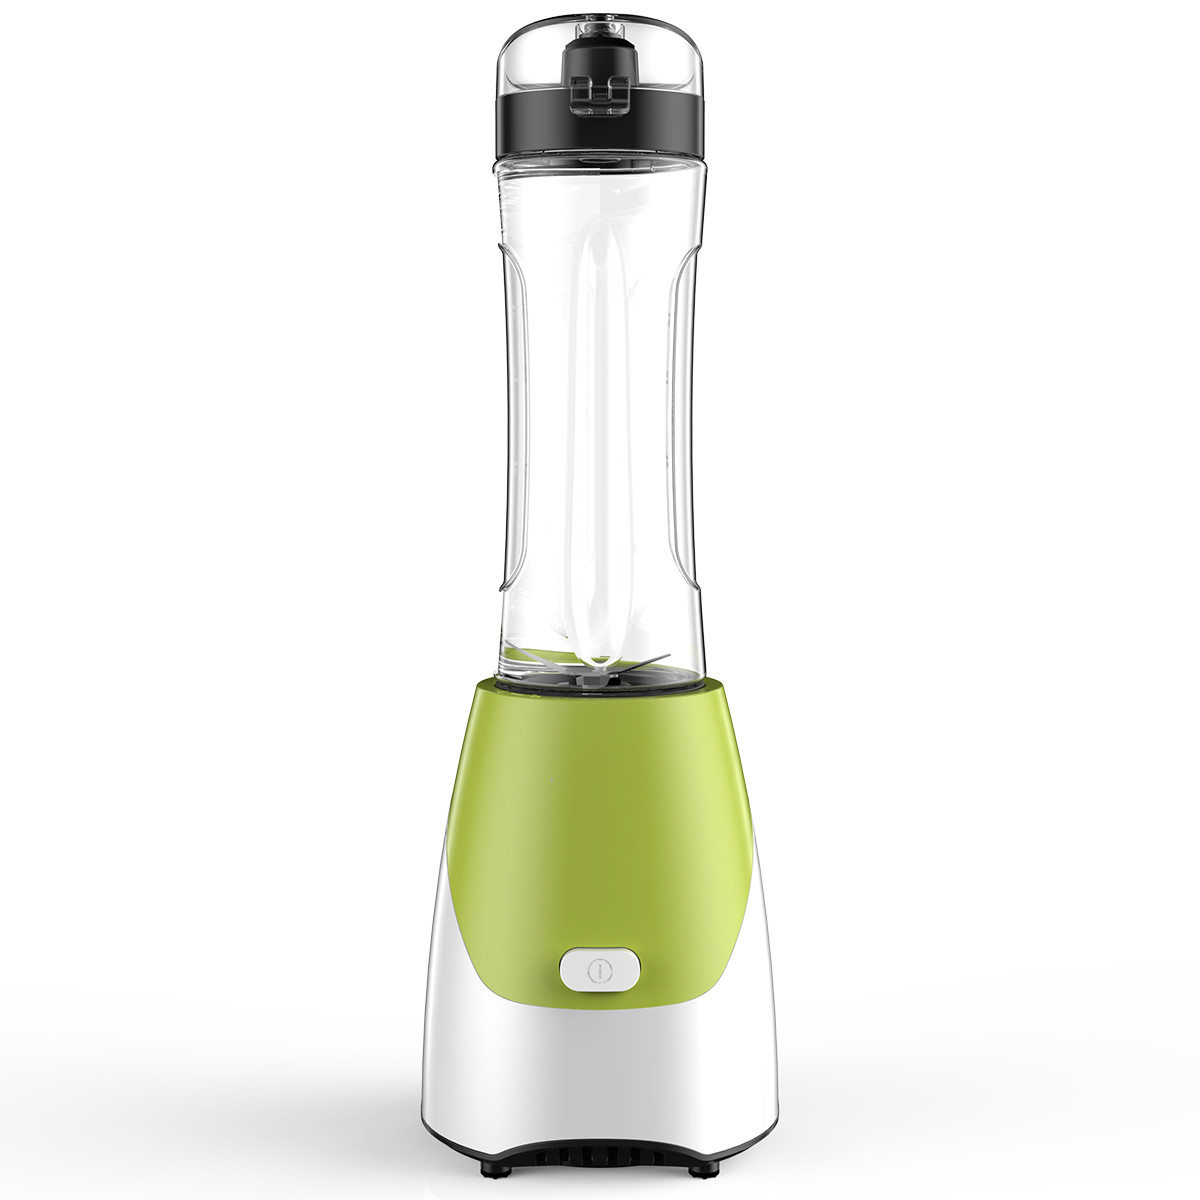 Juicers Juicer is a fully automatic portable juicer mini.Juicers Juicer is a fully automatic portable juicer mini.